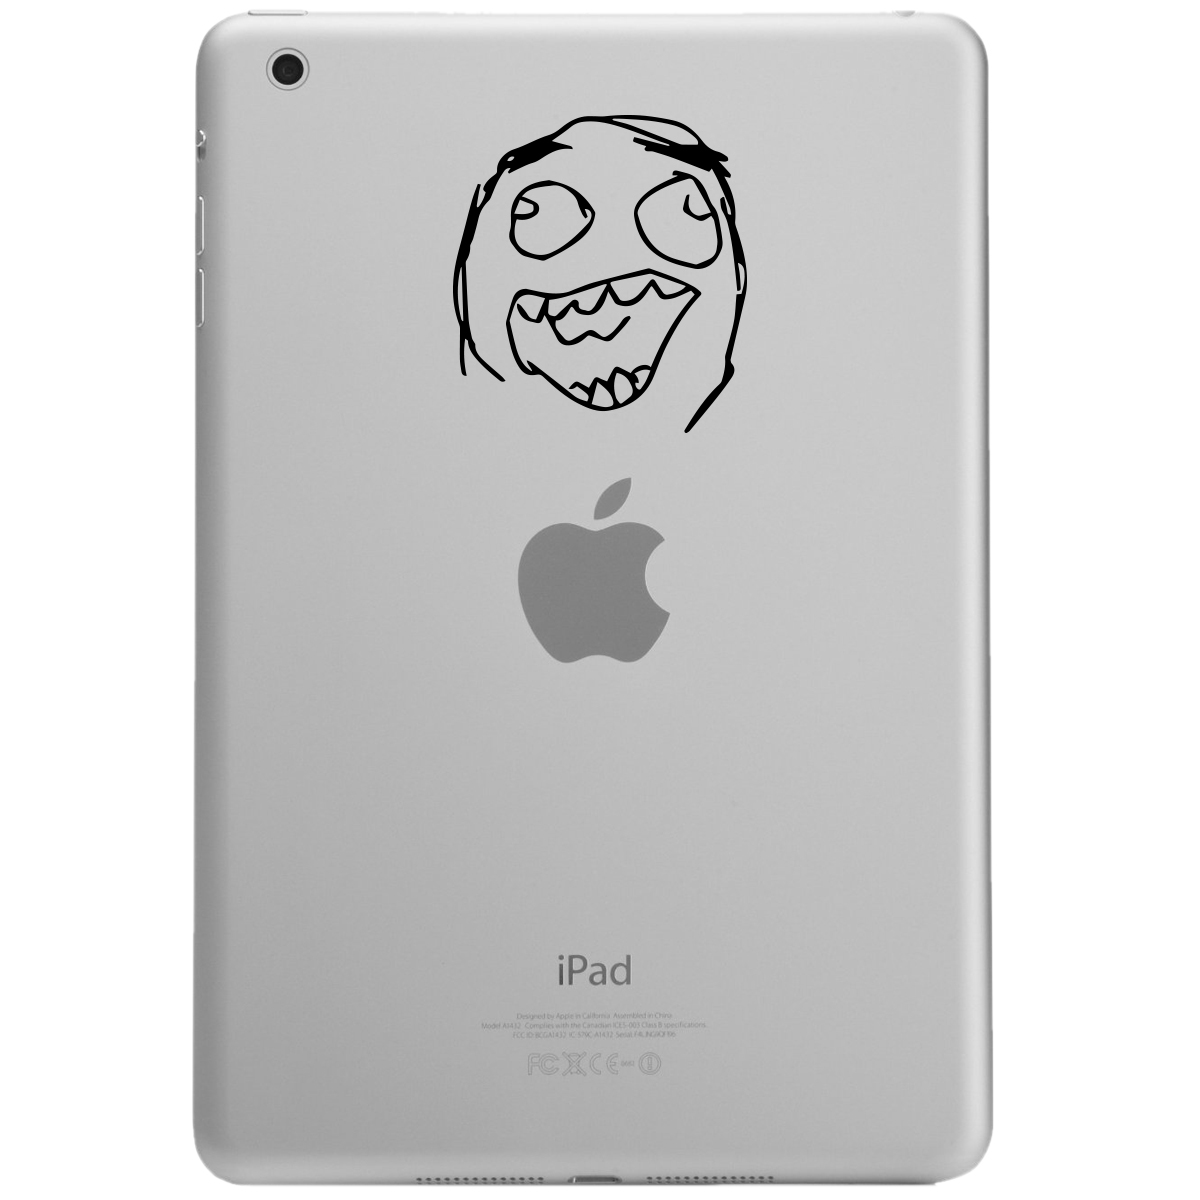 Funny Laughing Meme Face iPad Tablet Vinyl Sticker Decal